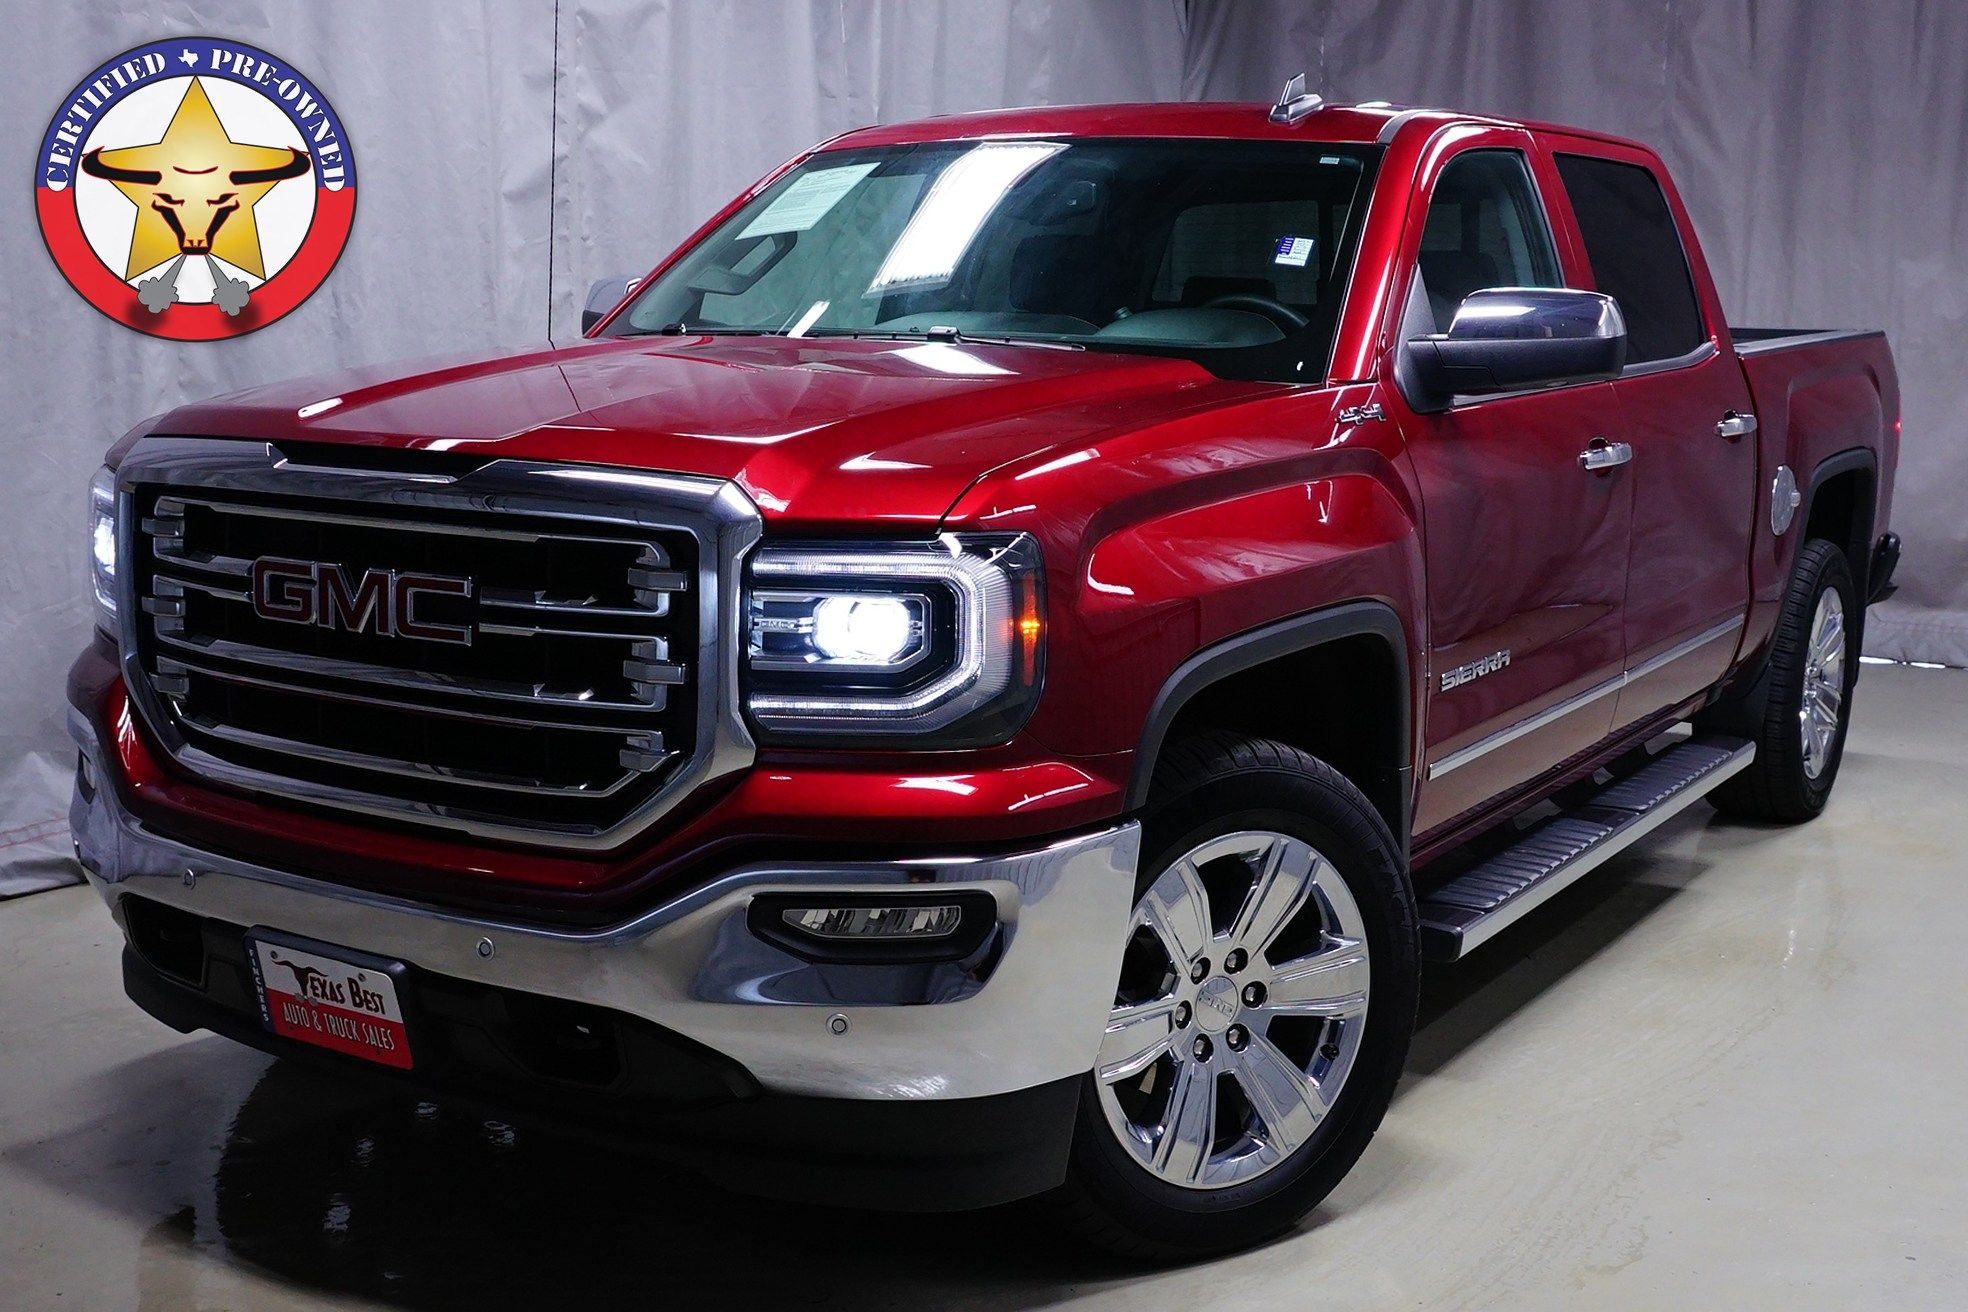 2017 Gmc Sierra 1500 Slt For Sale At Fincher S Texas Best Located